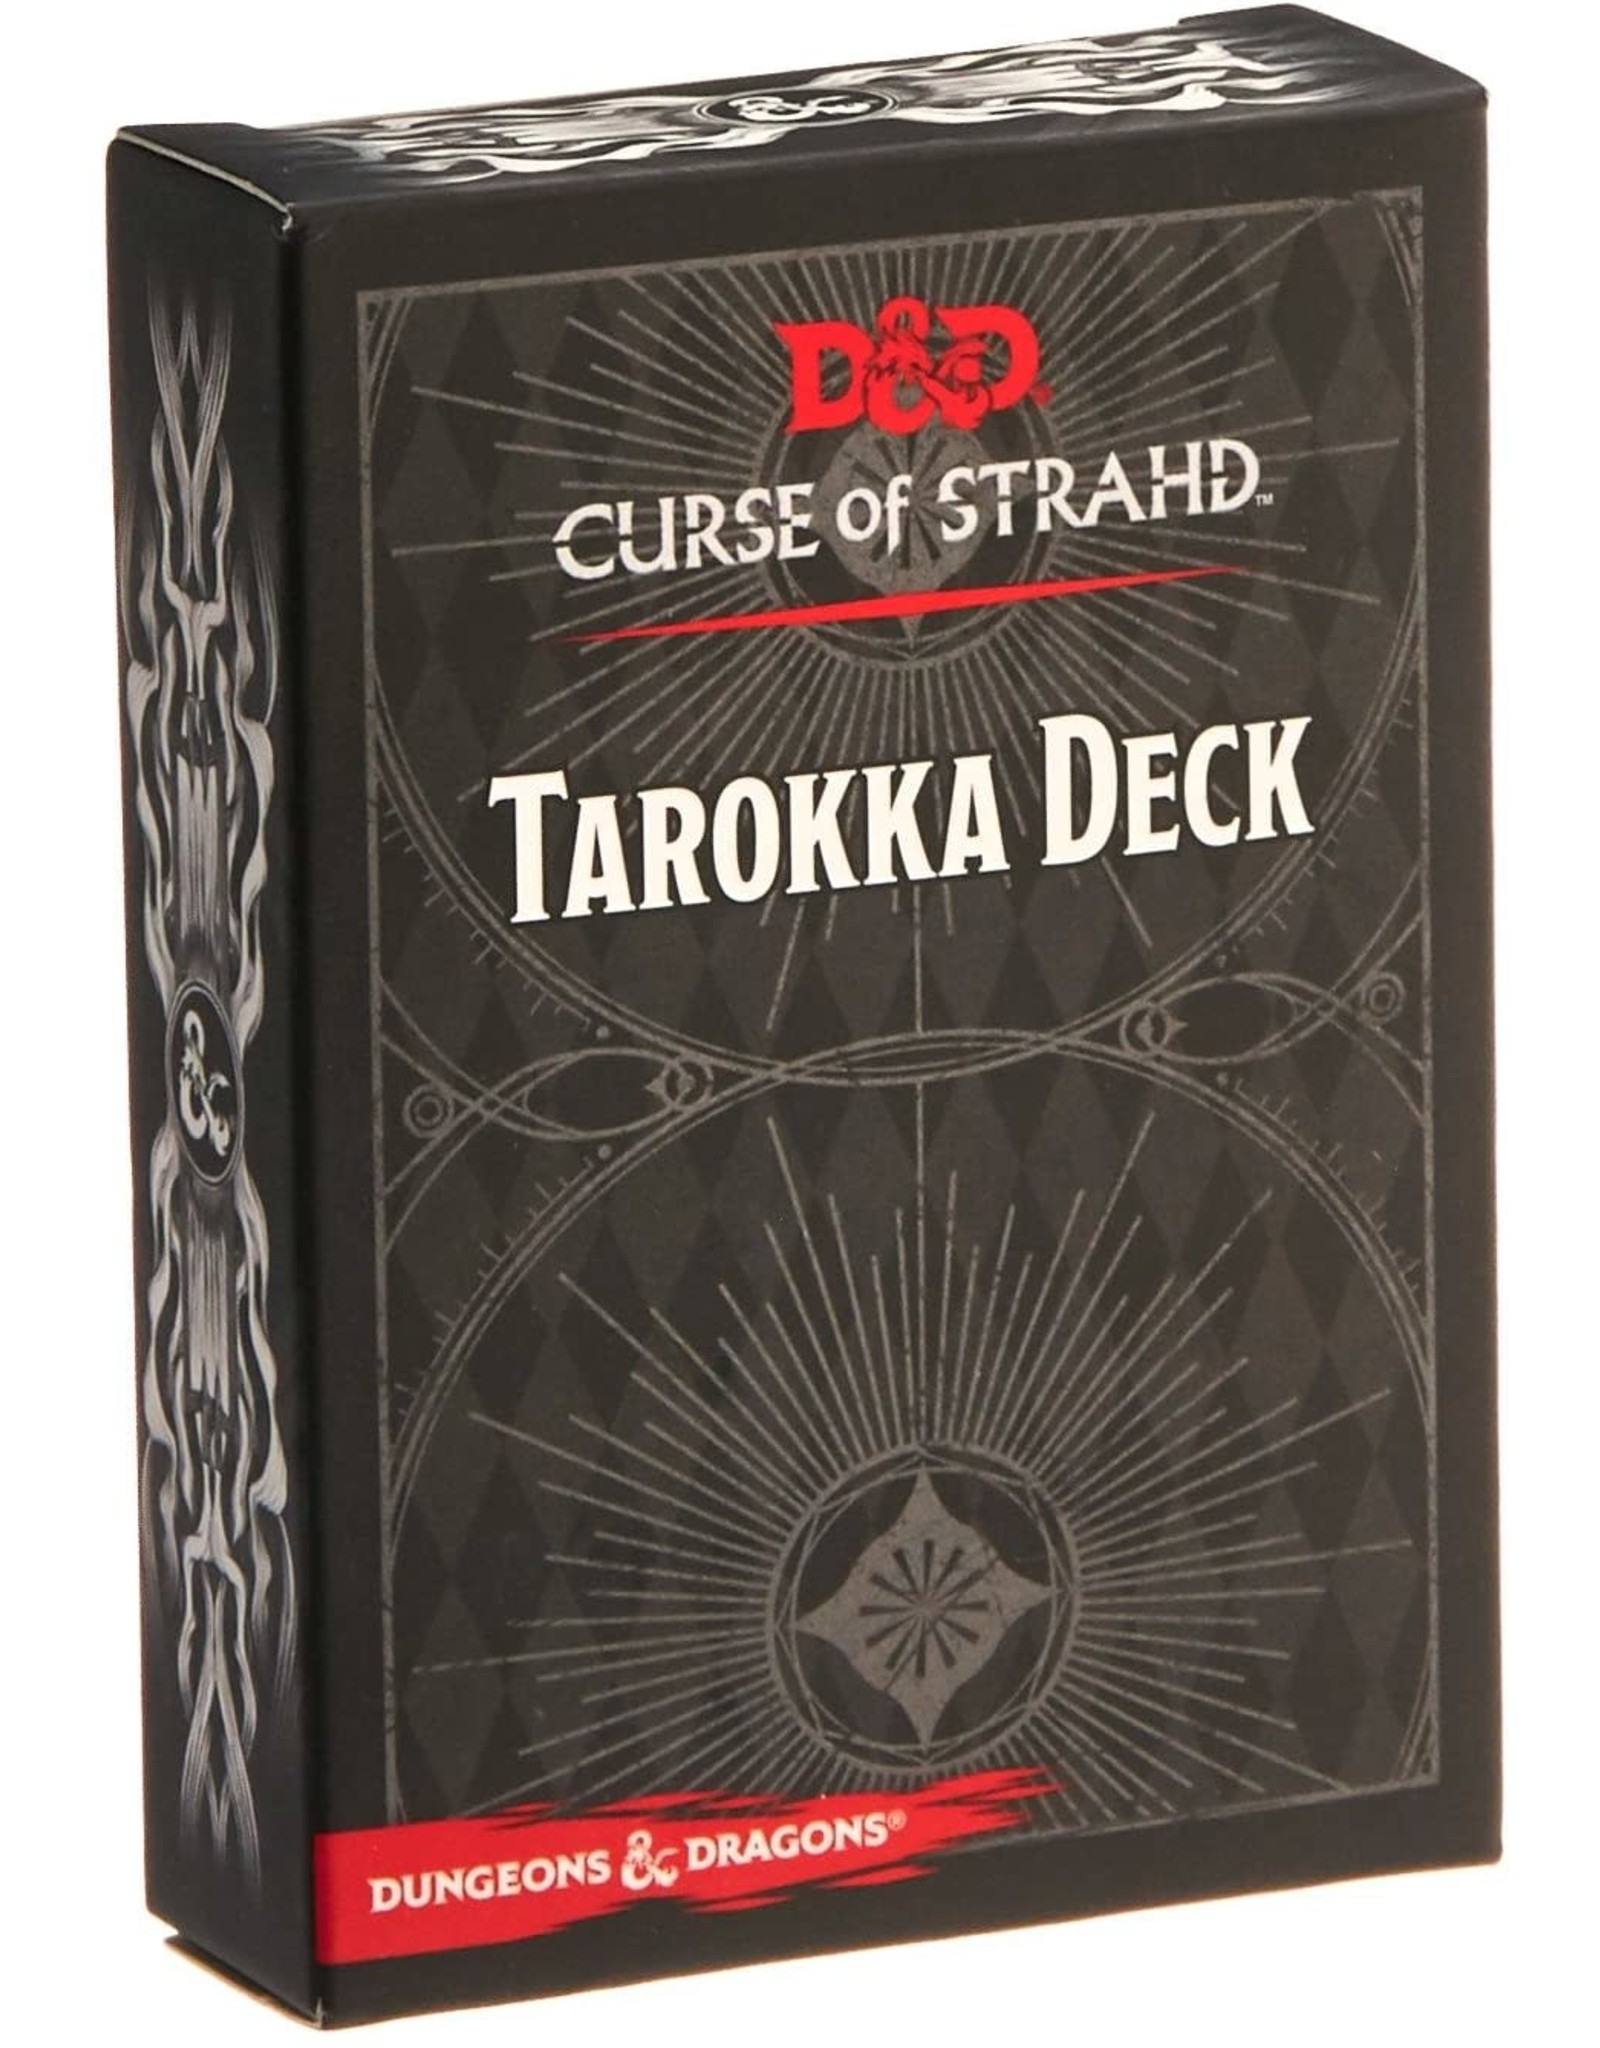 GaleForce9 D&D: Tarokka Deck: Curse of Strahd